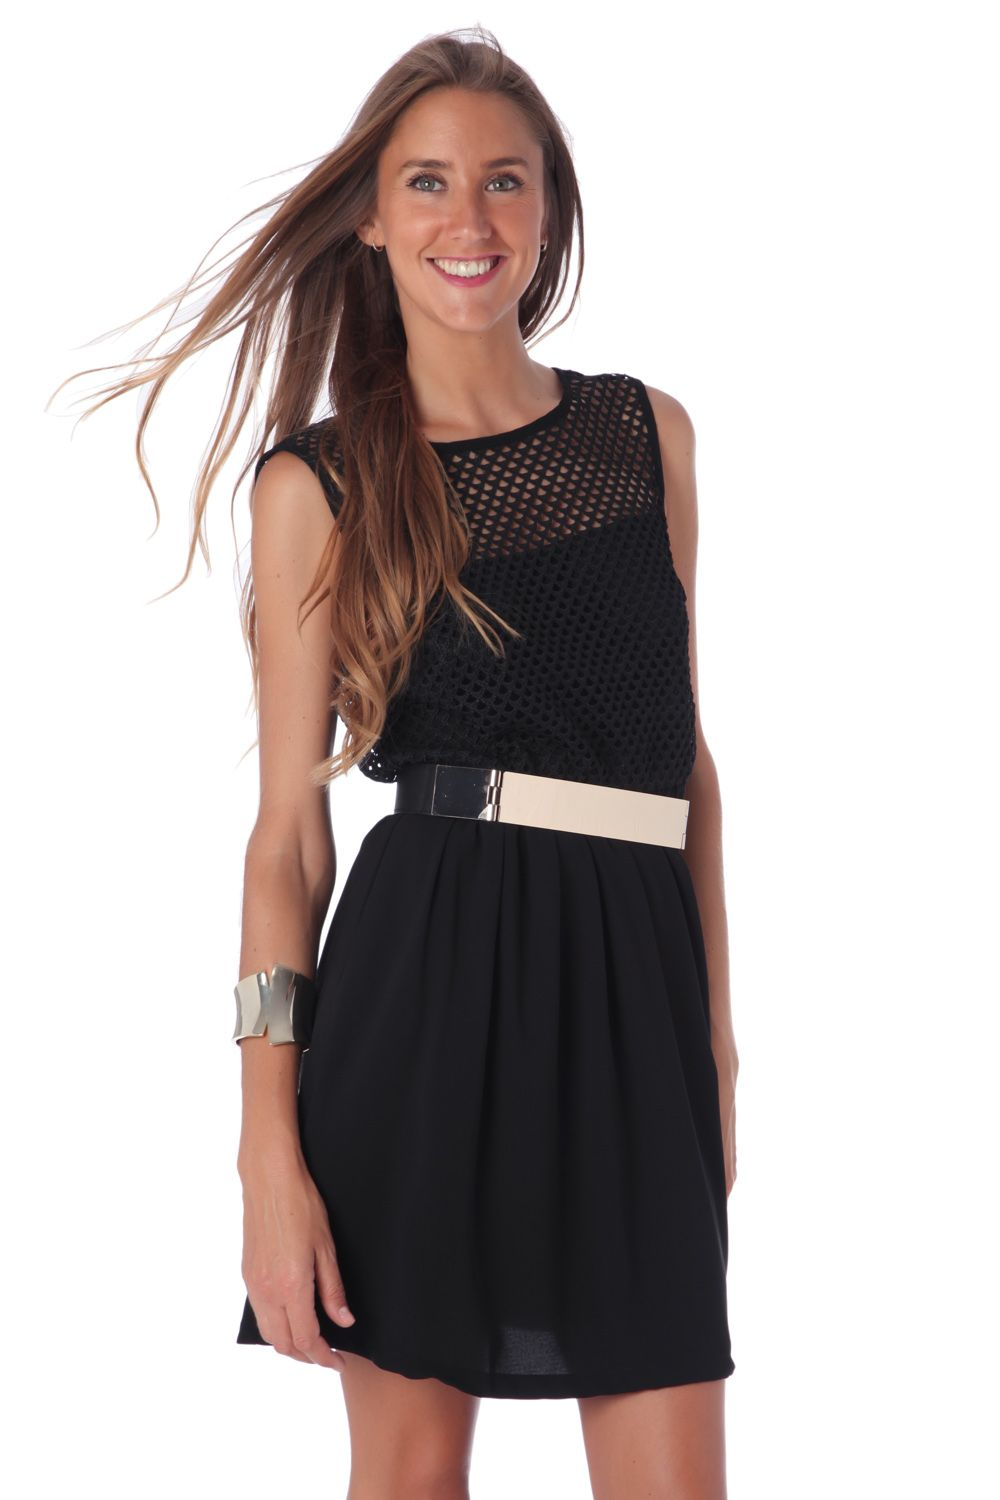 Black Skater Dress With Crochet Inserts-Women - Apparel - Dresses - Day to Night-L-Keyomi-Sook